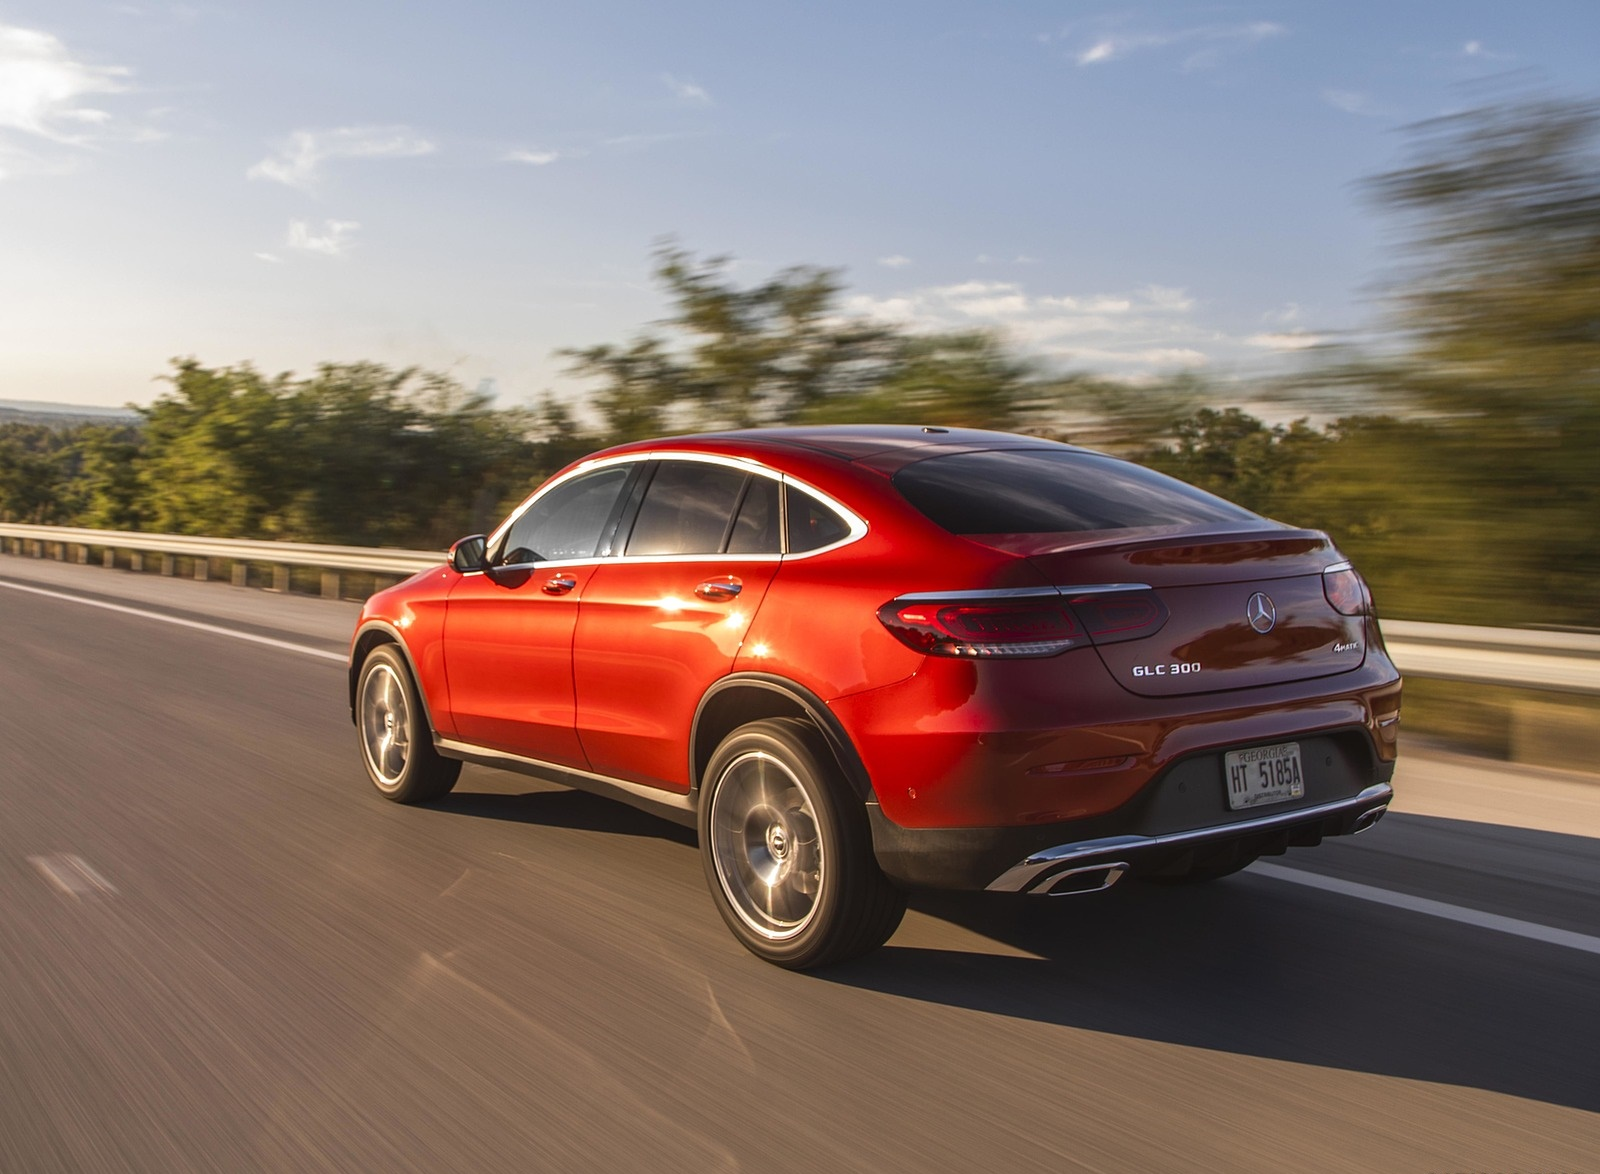 2020 Mercedes-Benz GLC 300 Coupe (US-Spec) Rear Three-Quarter Wallpapers (10)